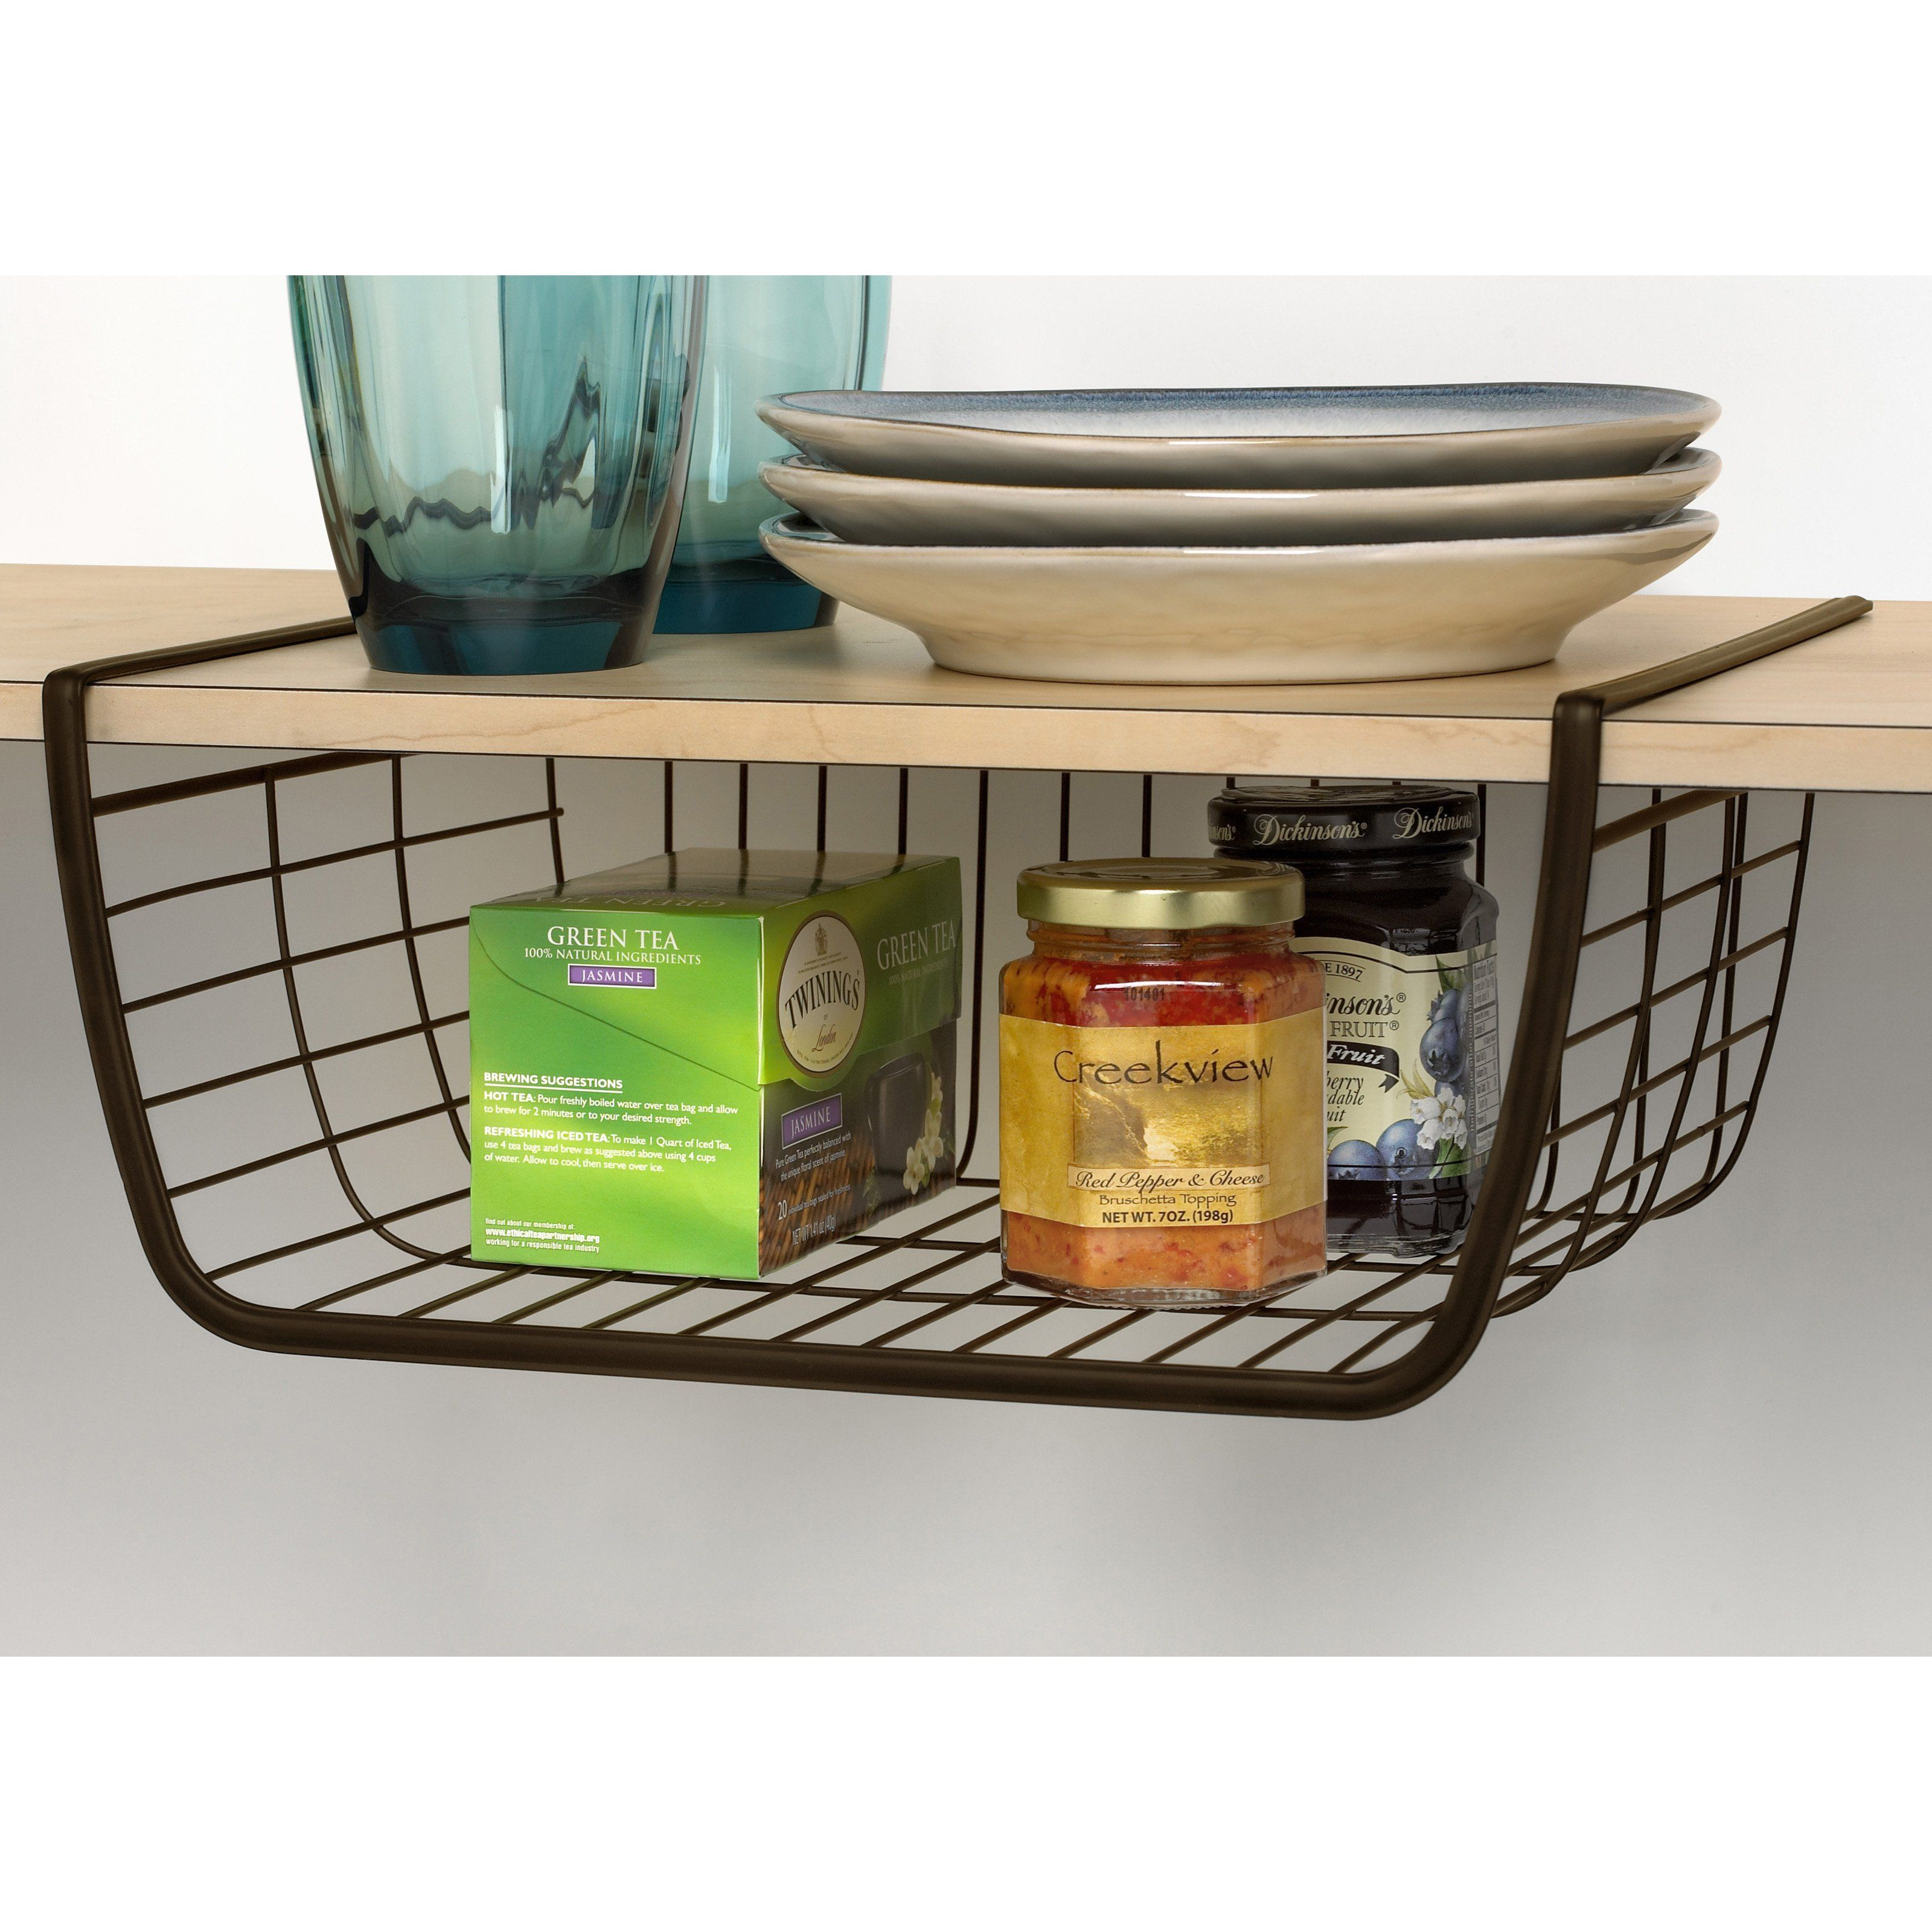 bins organize rack w storage plastic crates asp h l and it unit bin sloped containers with shelf x price